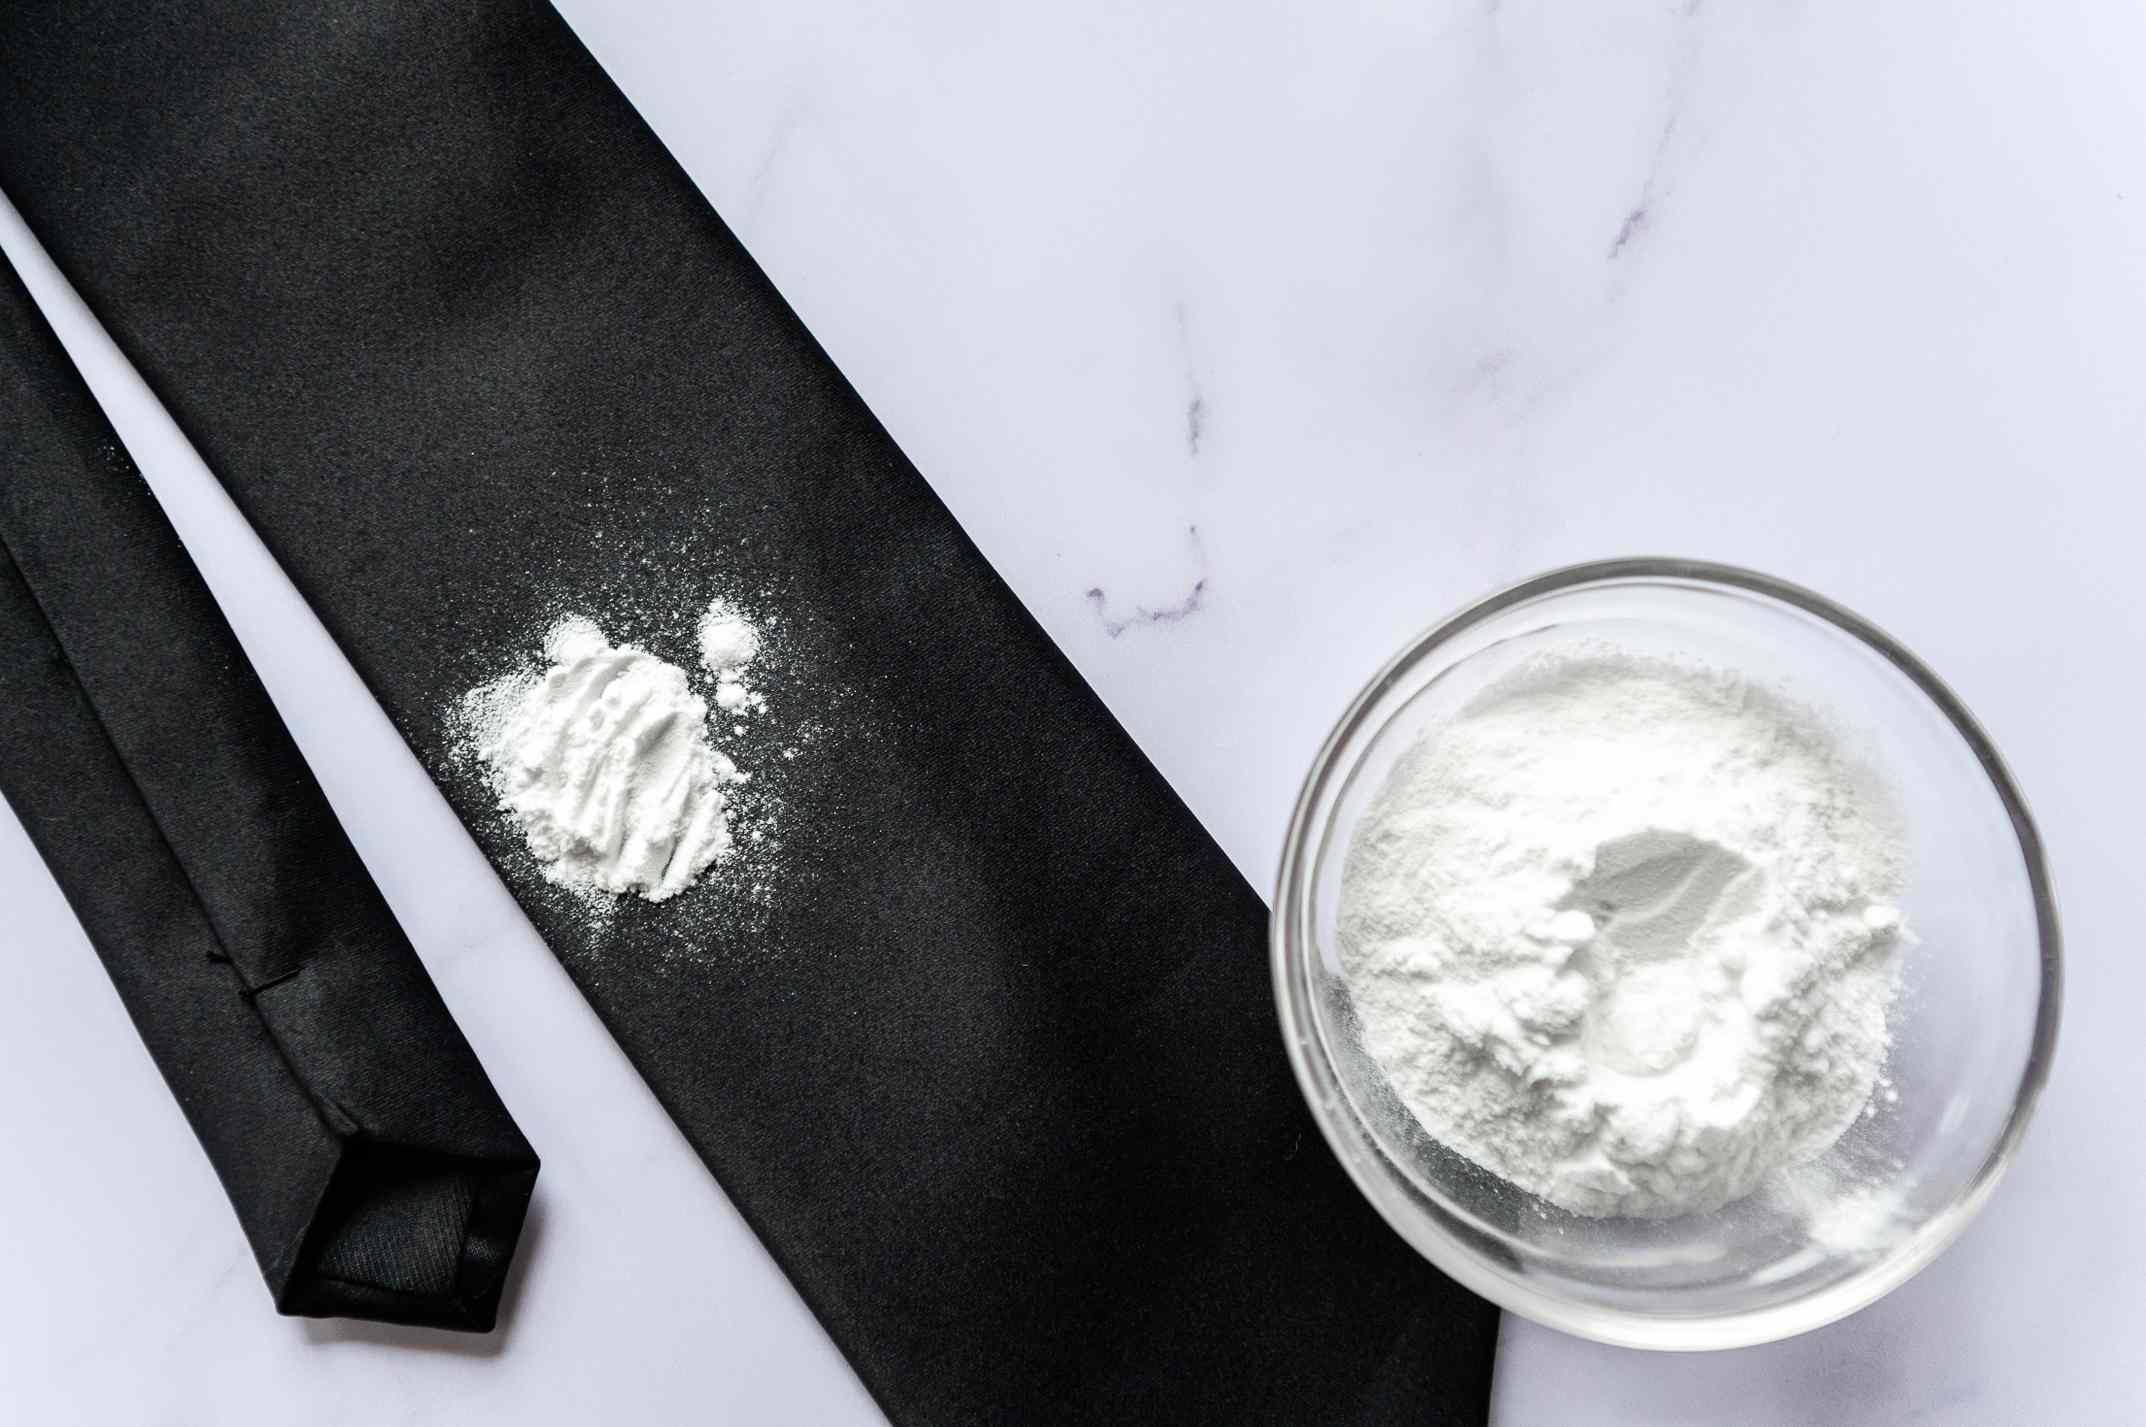 Talcum powder on a black tie and in a small bowl